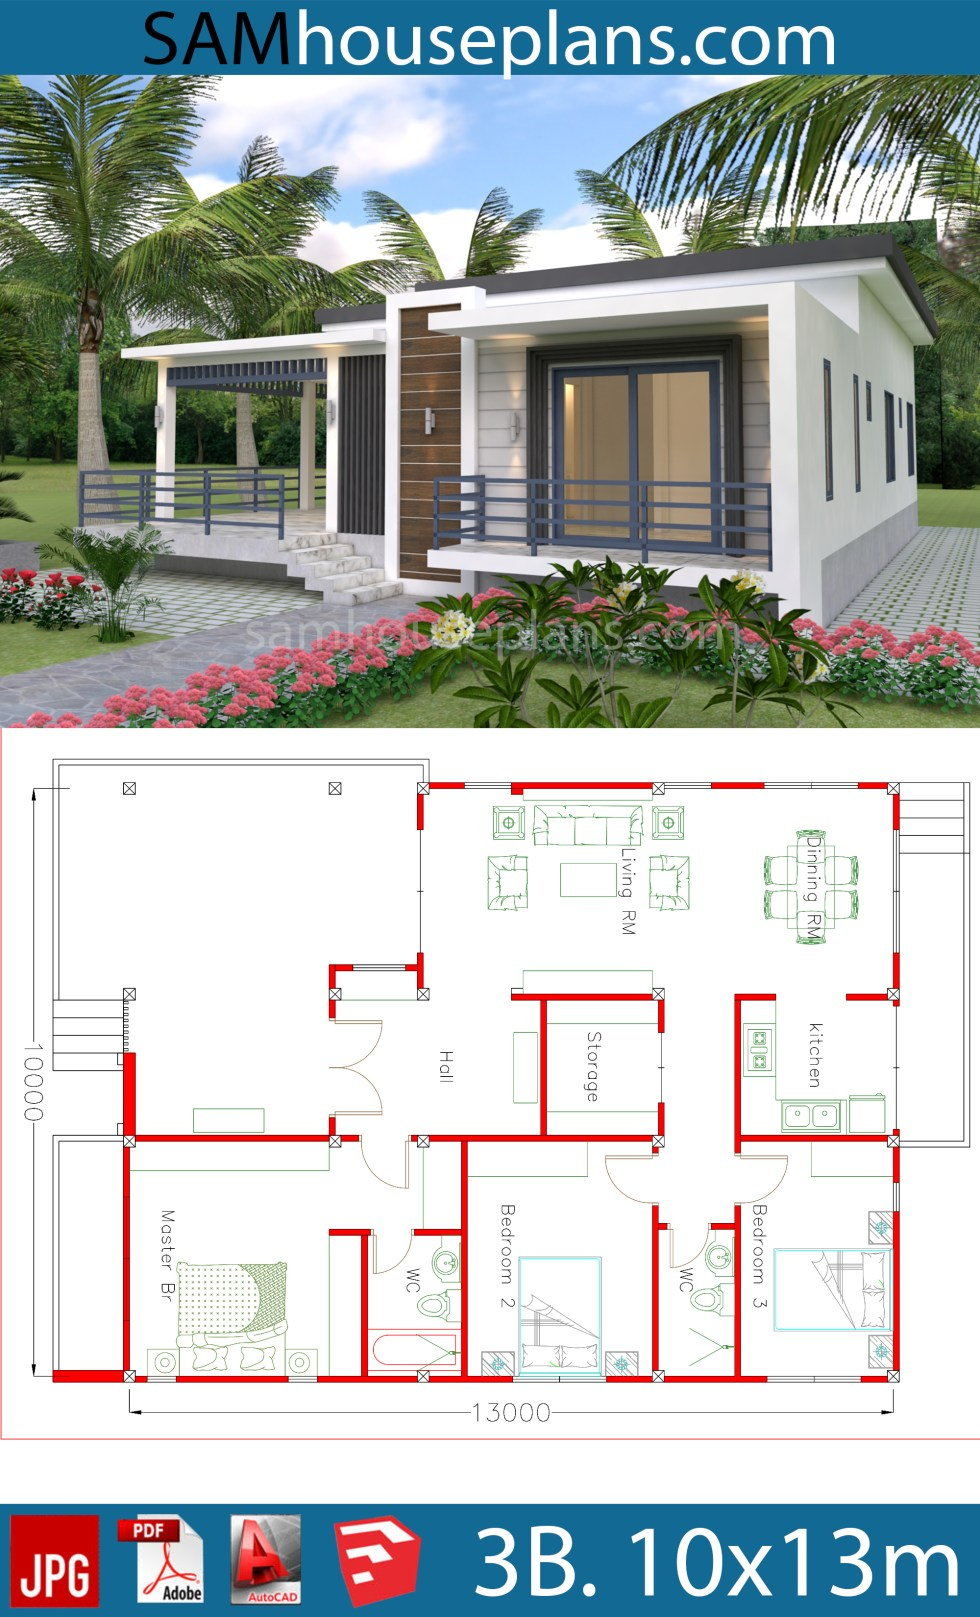 House Plans 10x13m with 3 Bedrooms - SamHousePlans